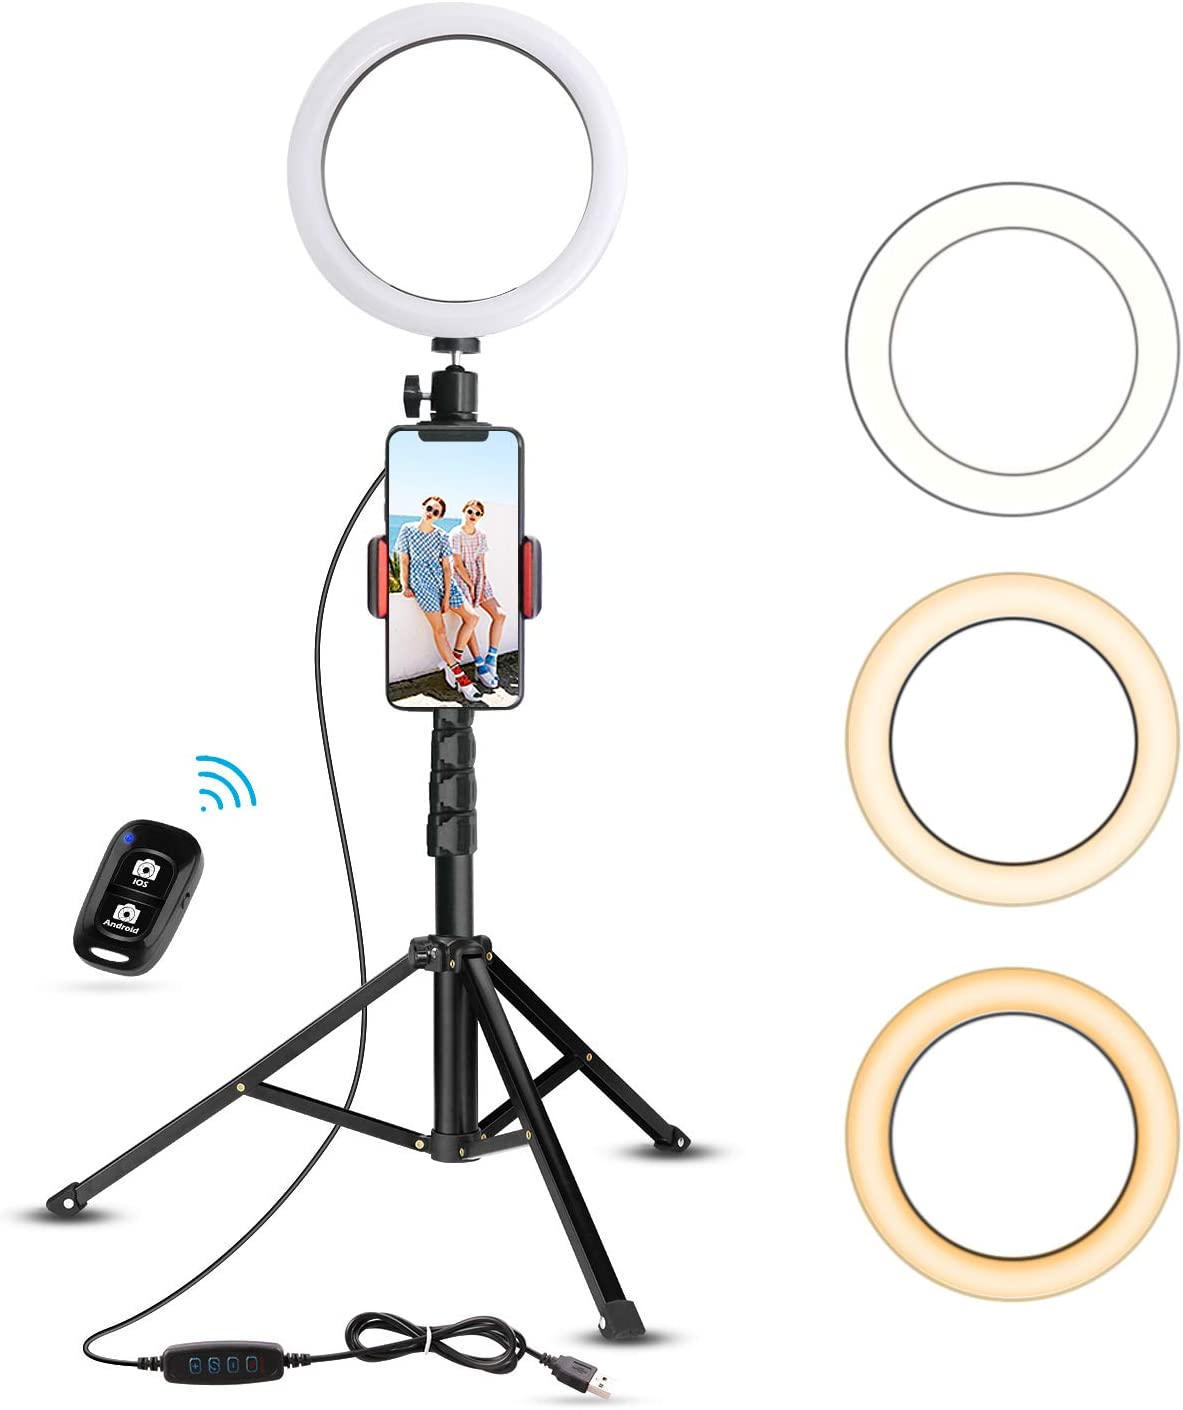 "8"" Selfie Ring Light with Tripod Stand & Cell Phone Holder for Live Stream/Makeup, UBeesize Mini Led Camera"